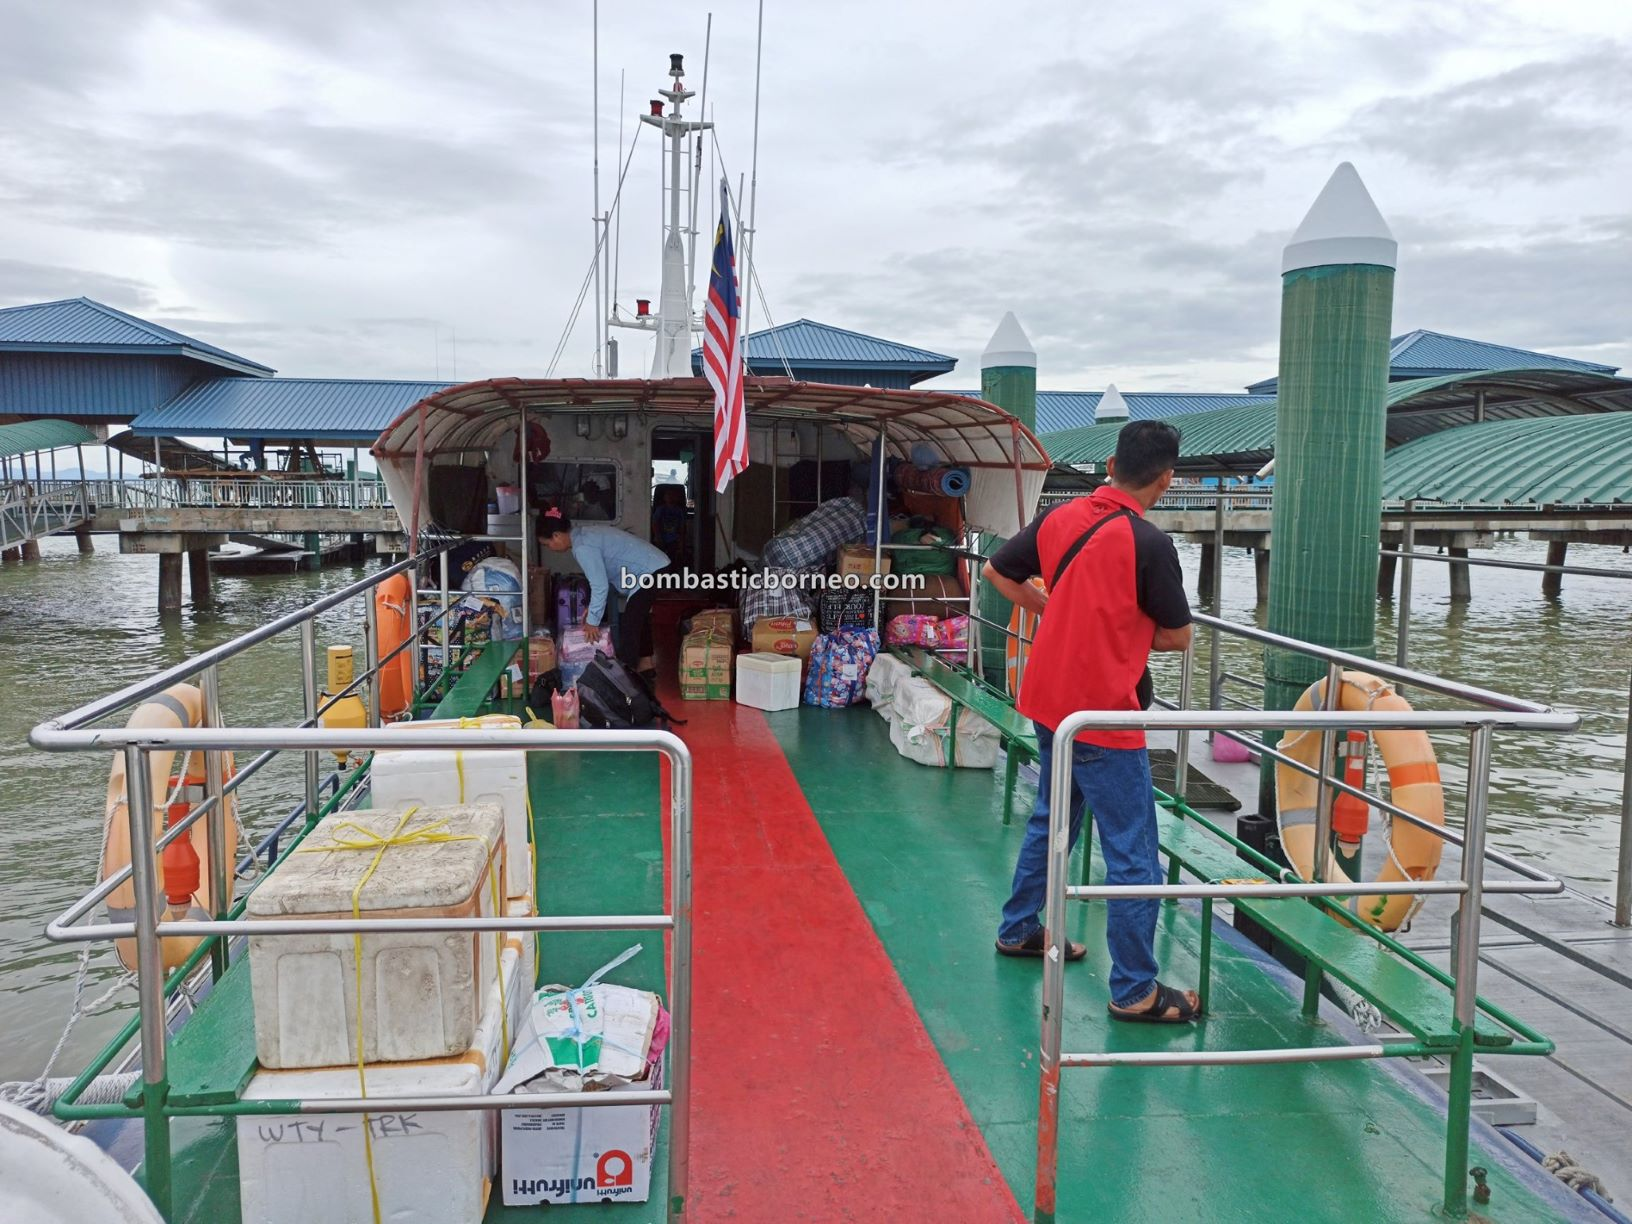 Familiarisation trip, backpackers, Kalimantan Utara, Kapal Besar, MV Tawindo, wharf, Sabah, Malaysia, Tourism, Transportation, travel guide, Trans Border, Borneo, 穿越婆罗洲游踪, 马来西亚沙巴斗湖